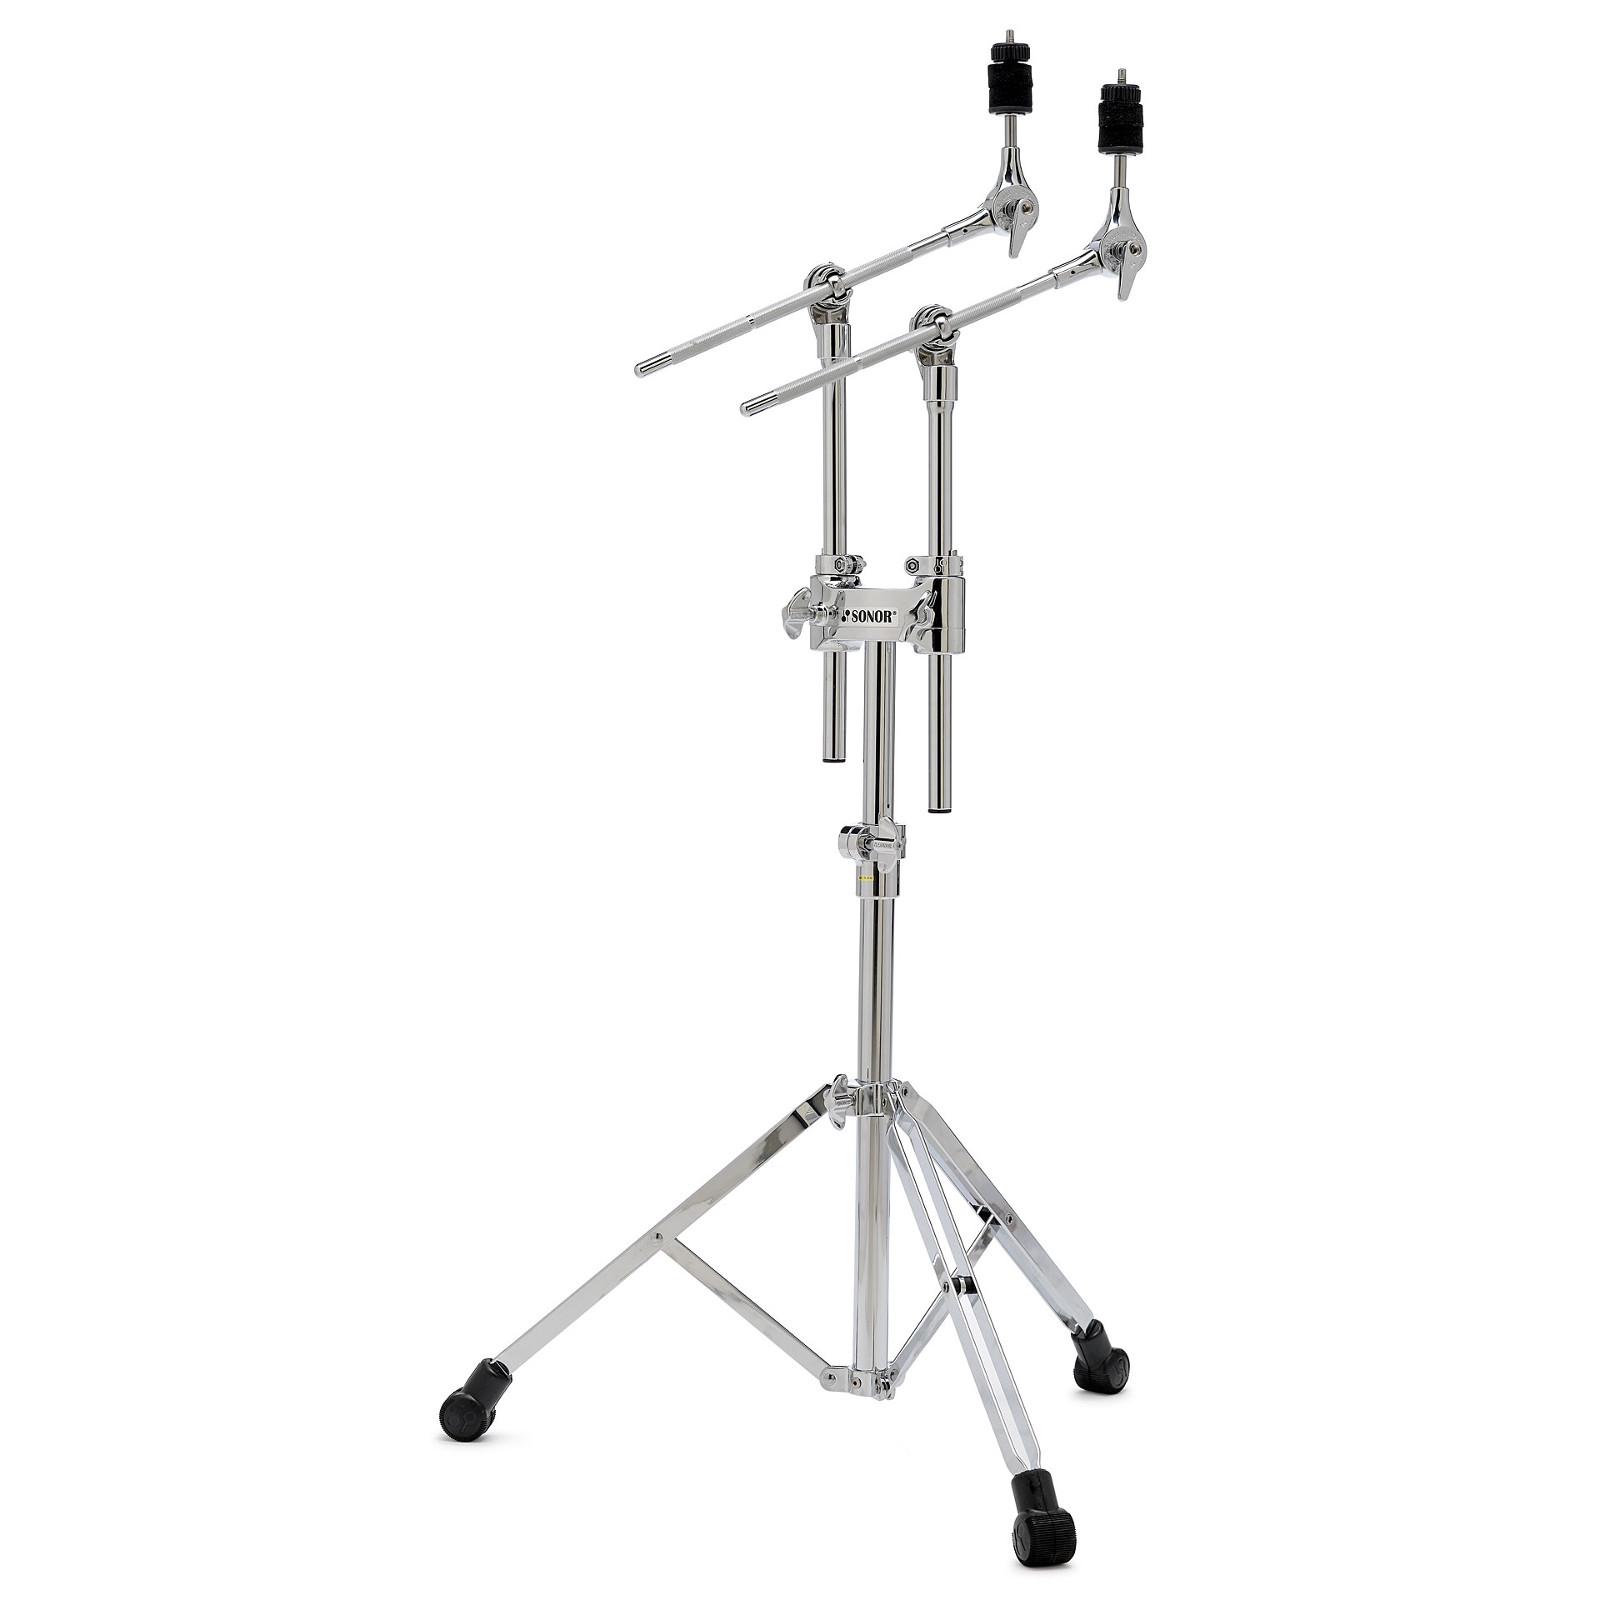 DCS 400 SOPORTE DOBLE DE PRATOS